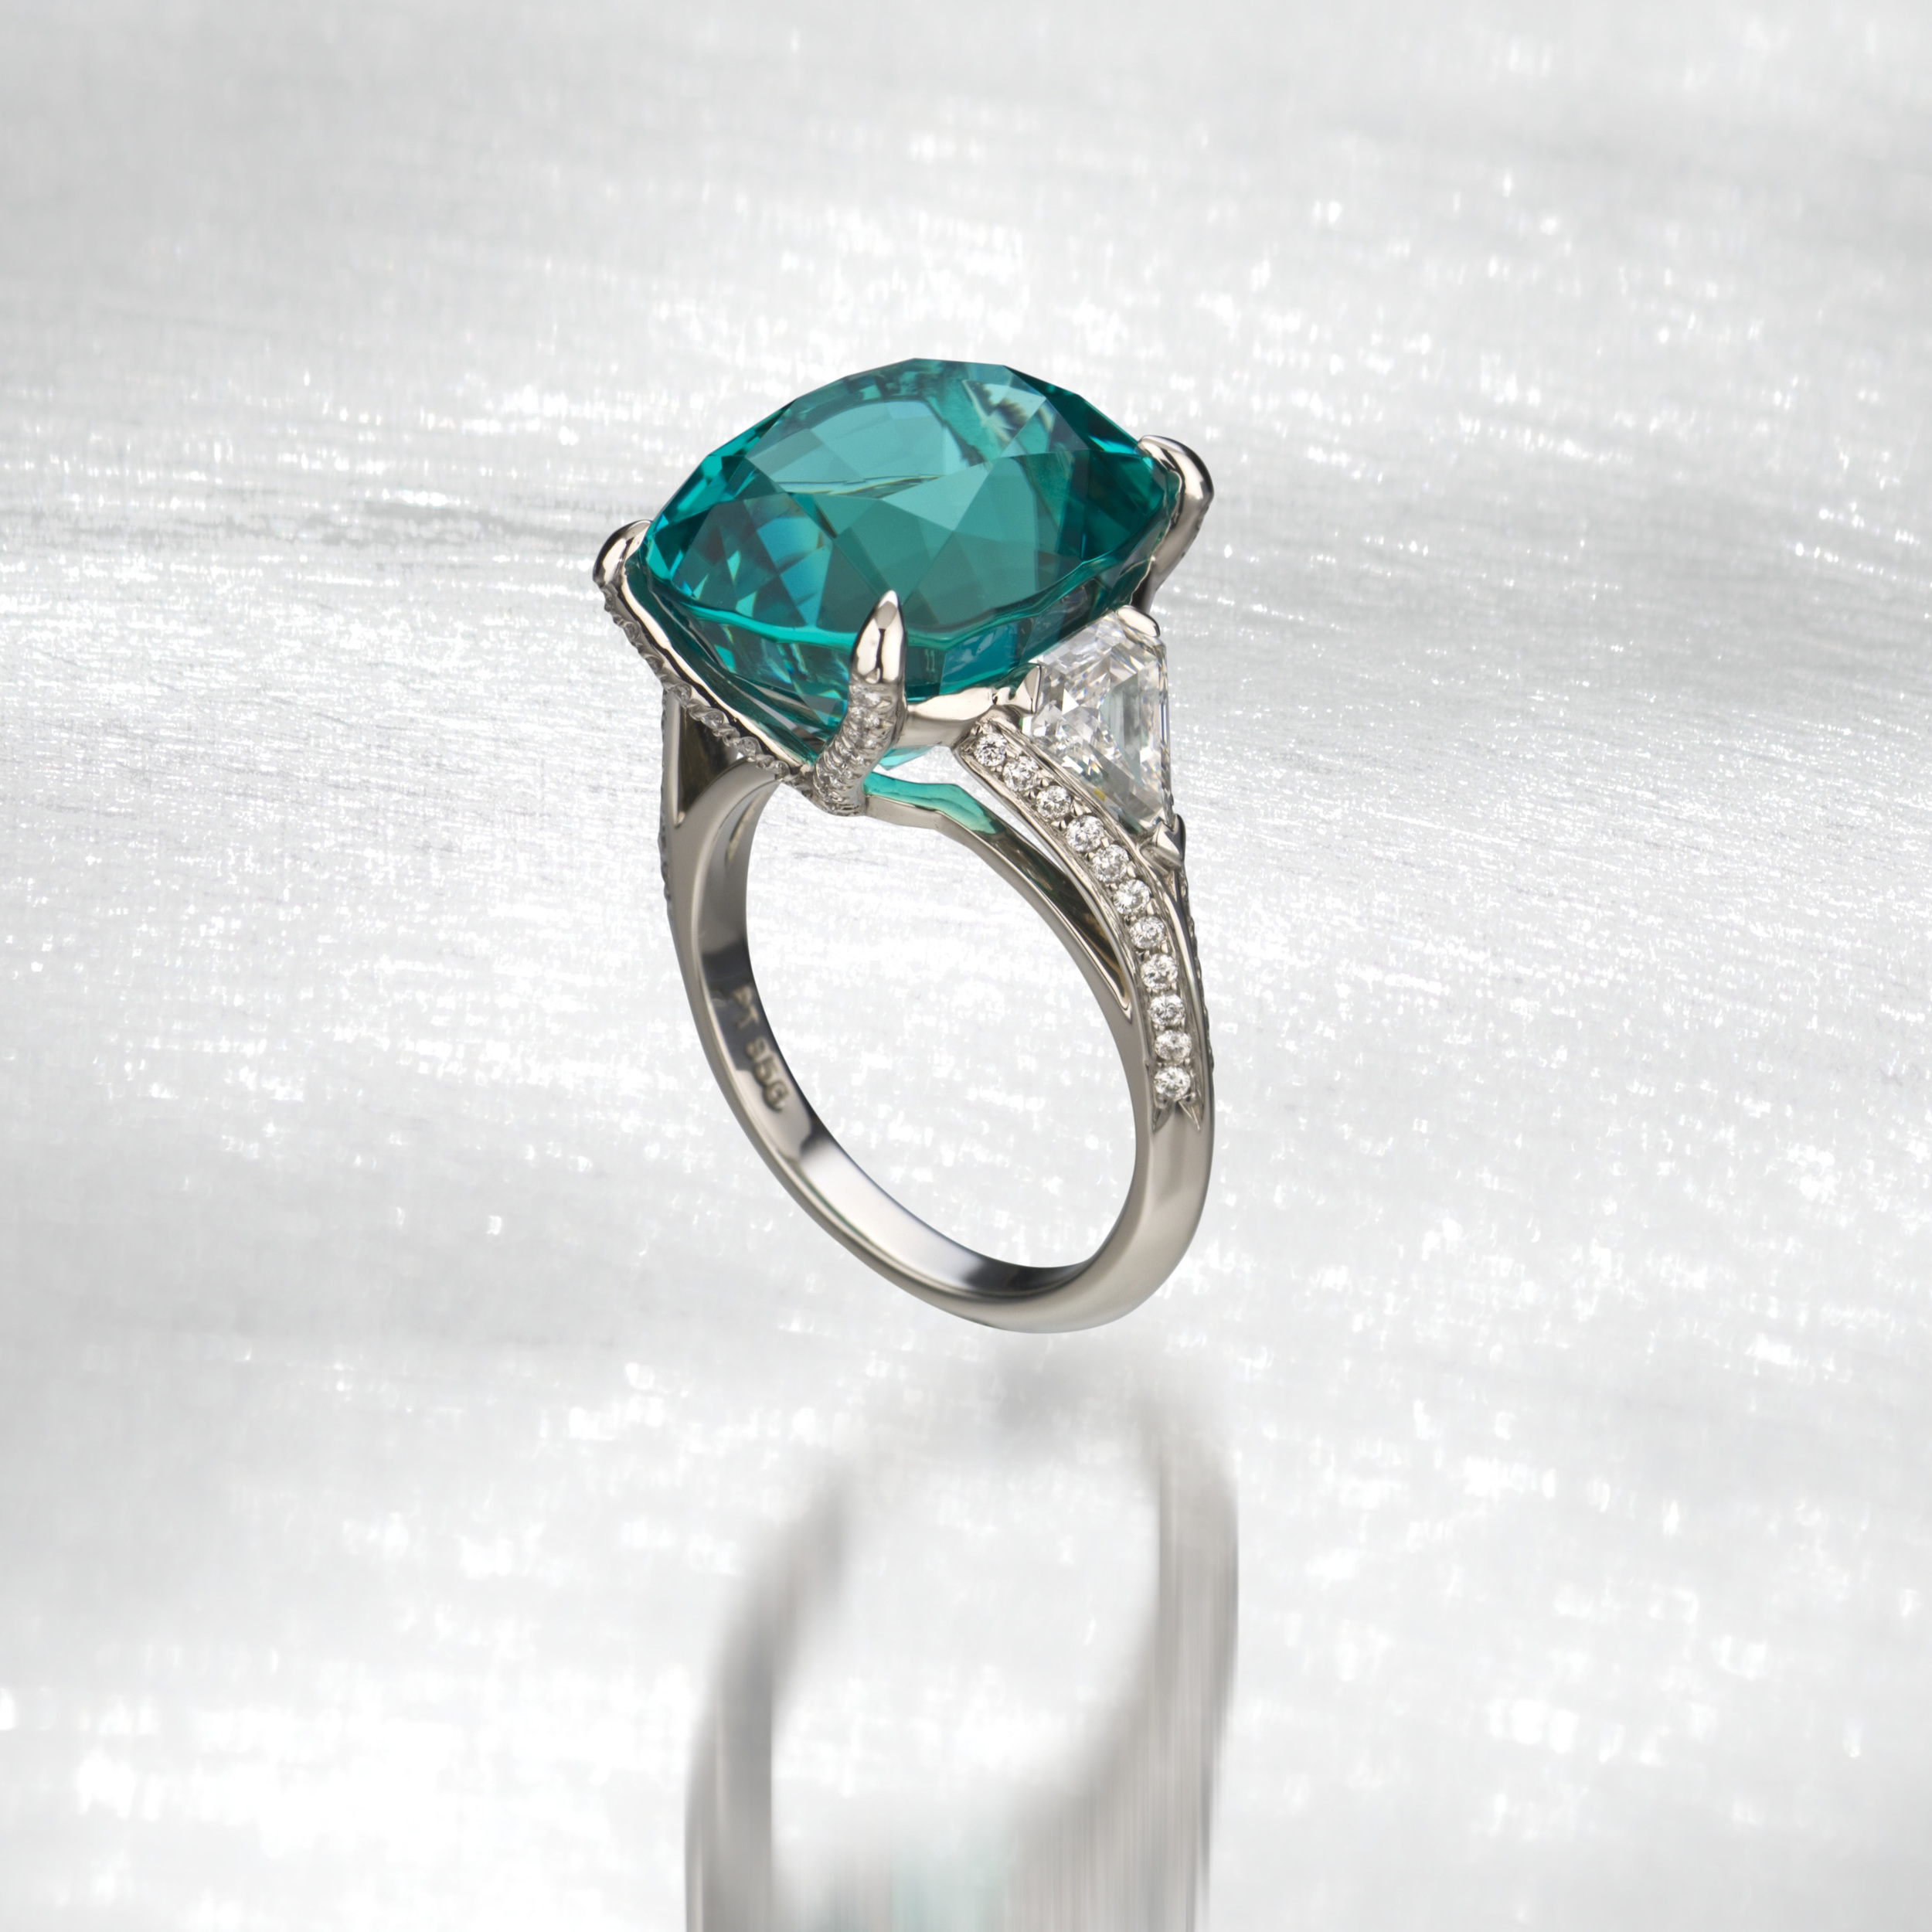 3rd Place 2009 Spectrum Award, Classic Jewelry Division  14ct Tormaline & Diamond Ring